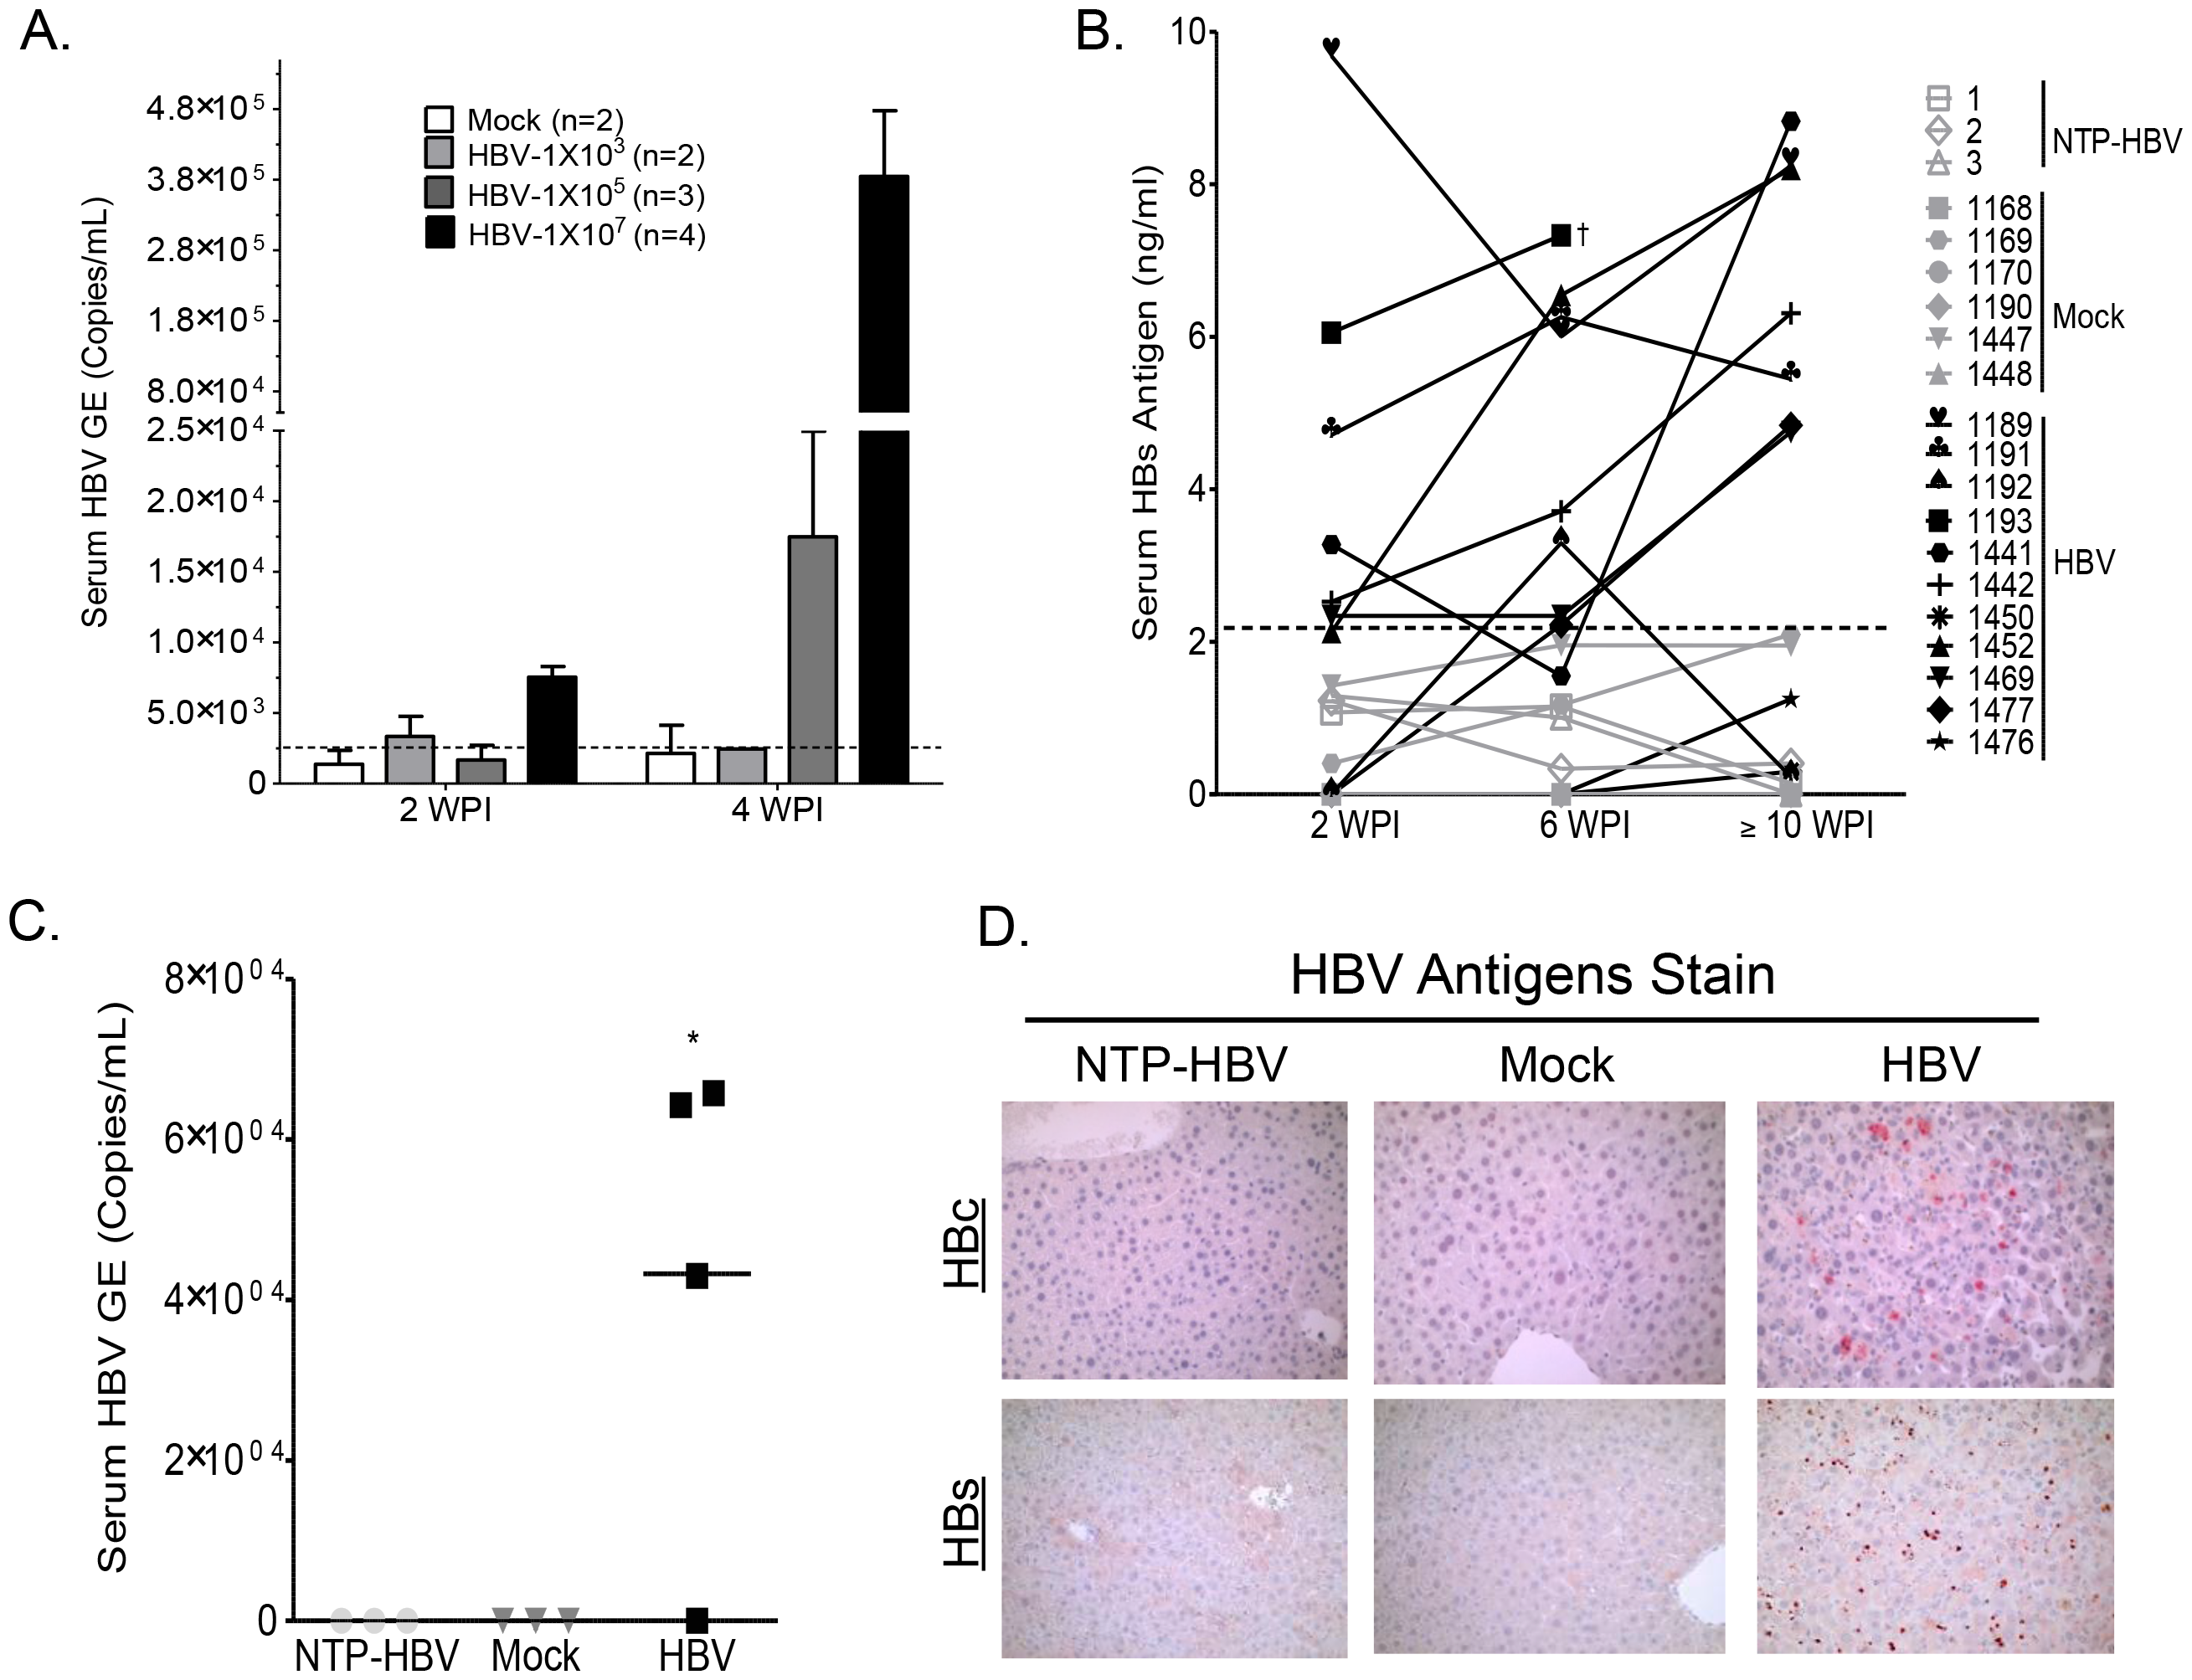 Persistent HBV infection in A2/NSG/Fas-hu HSC/Hep mice.